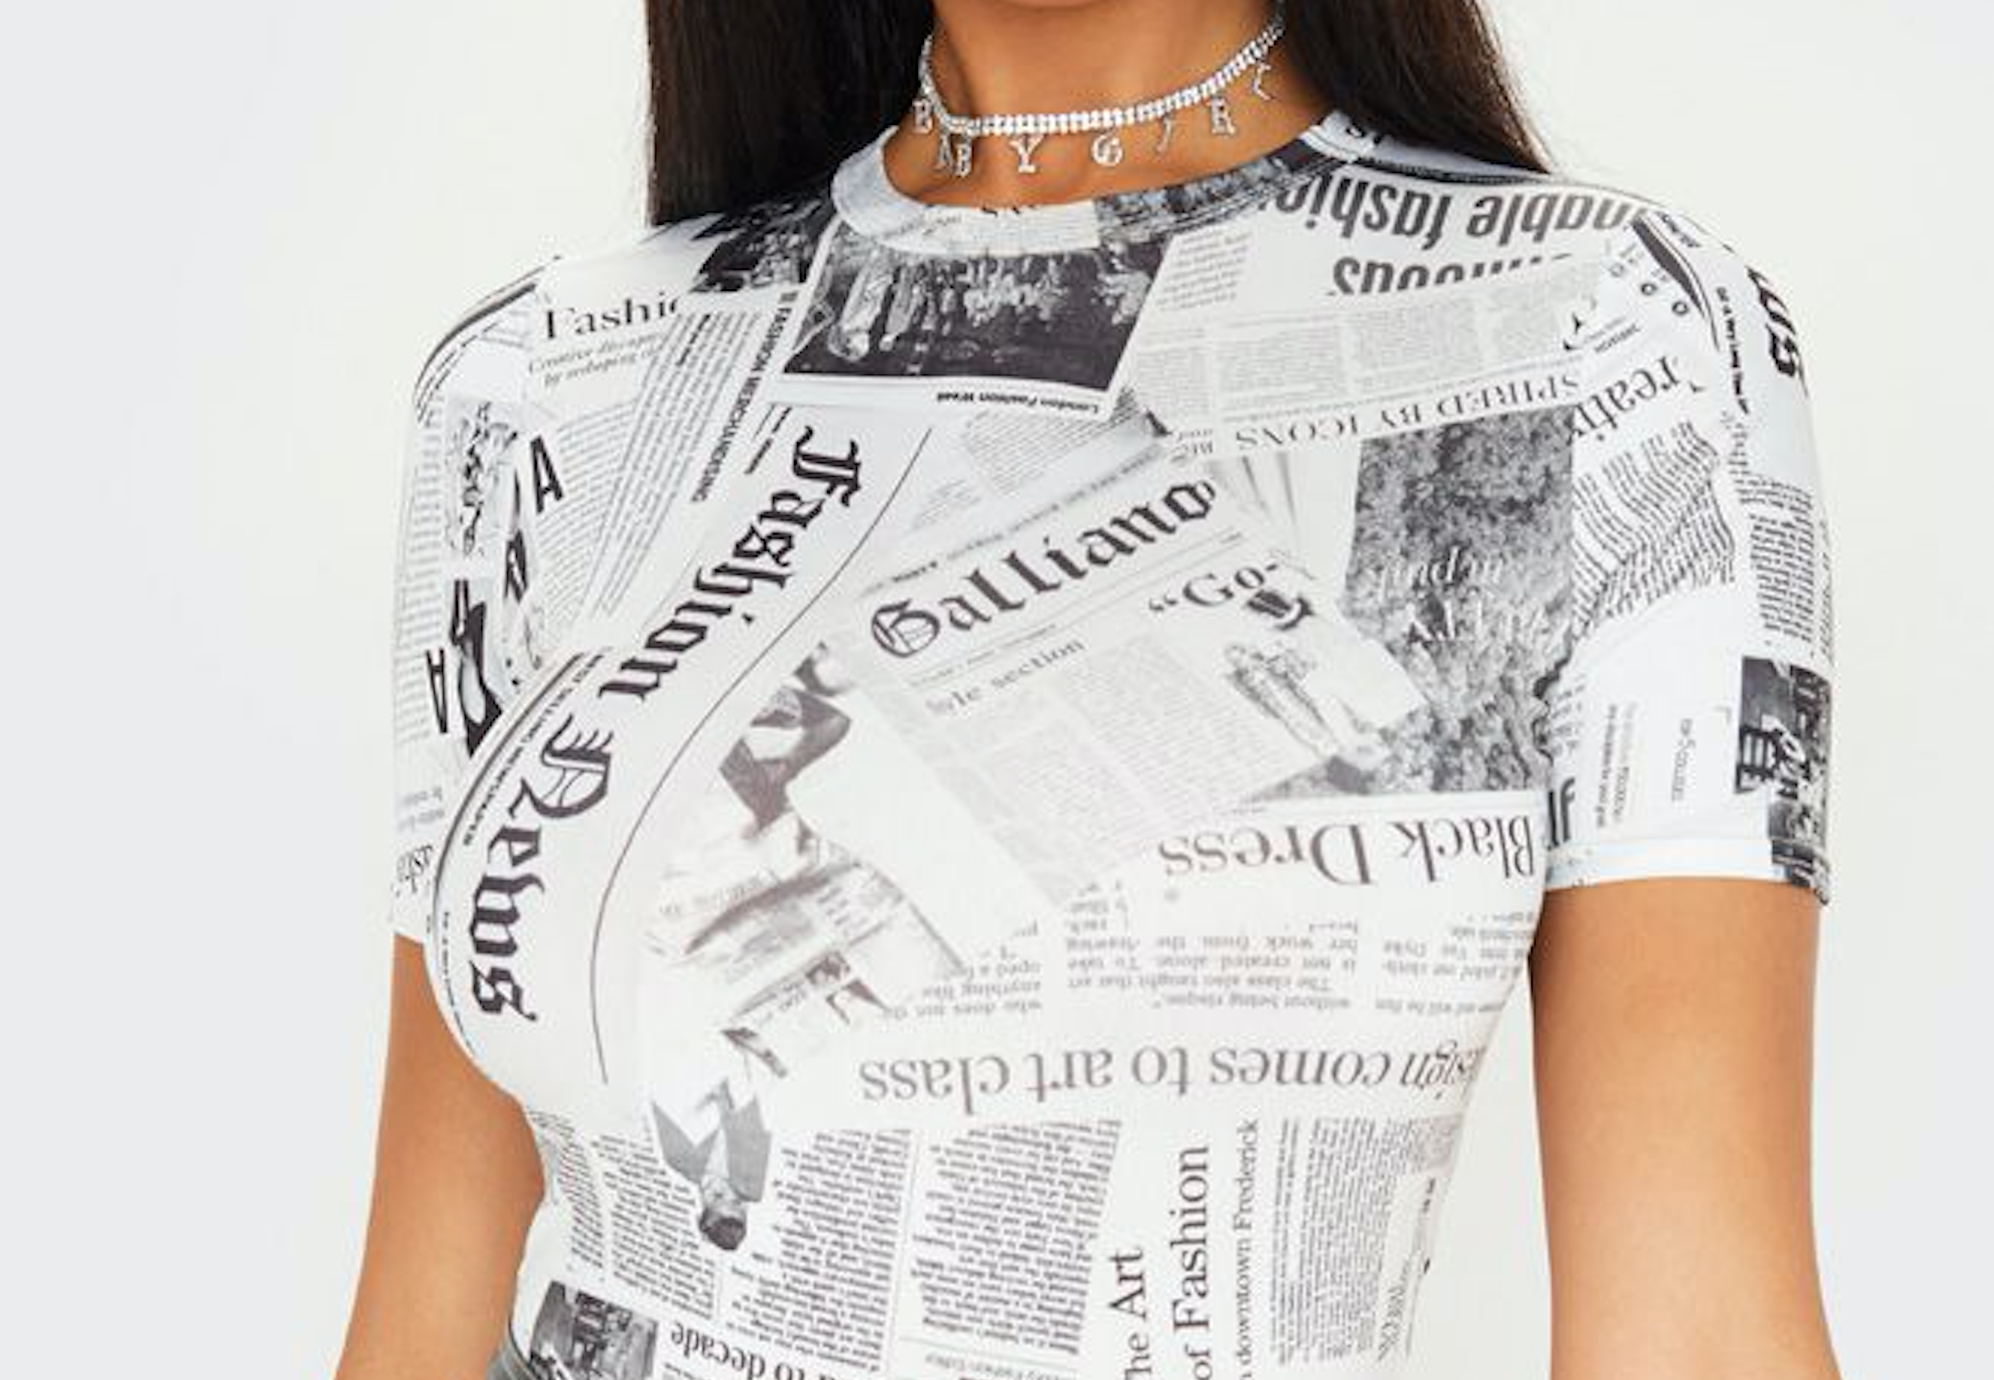 John Galliano's Newspaper Print is Getting the Fast Fashion Treatment 20 Years Later